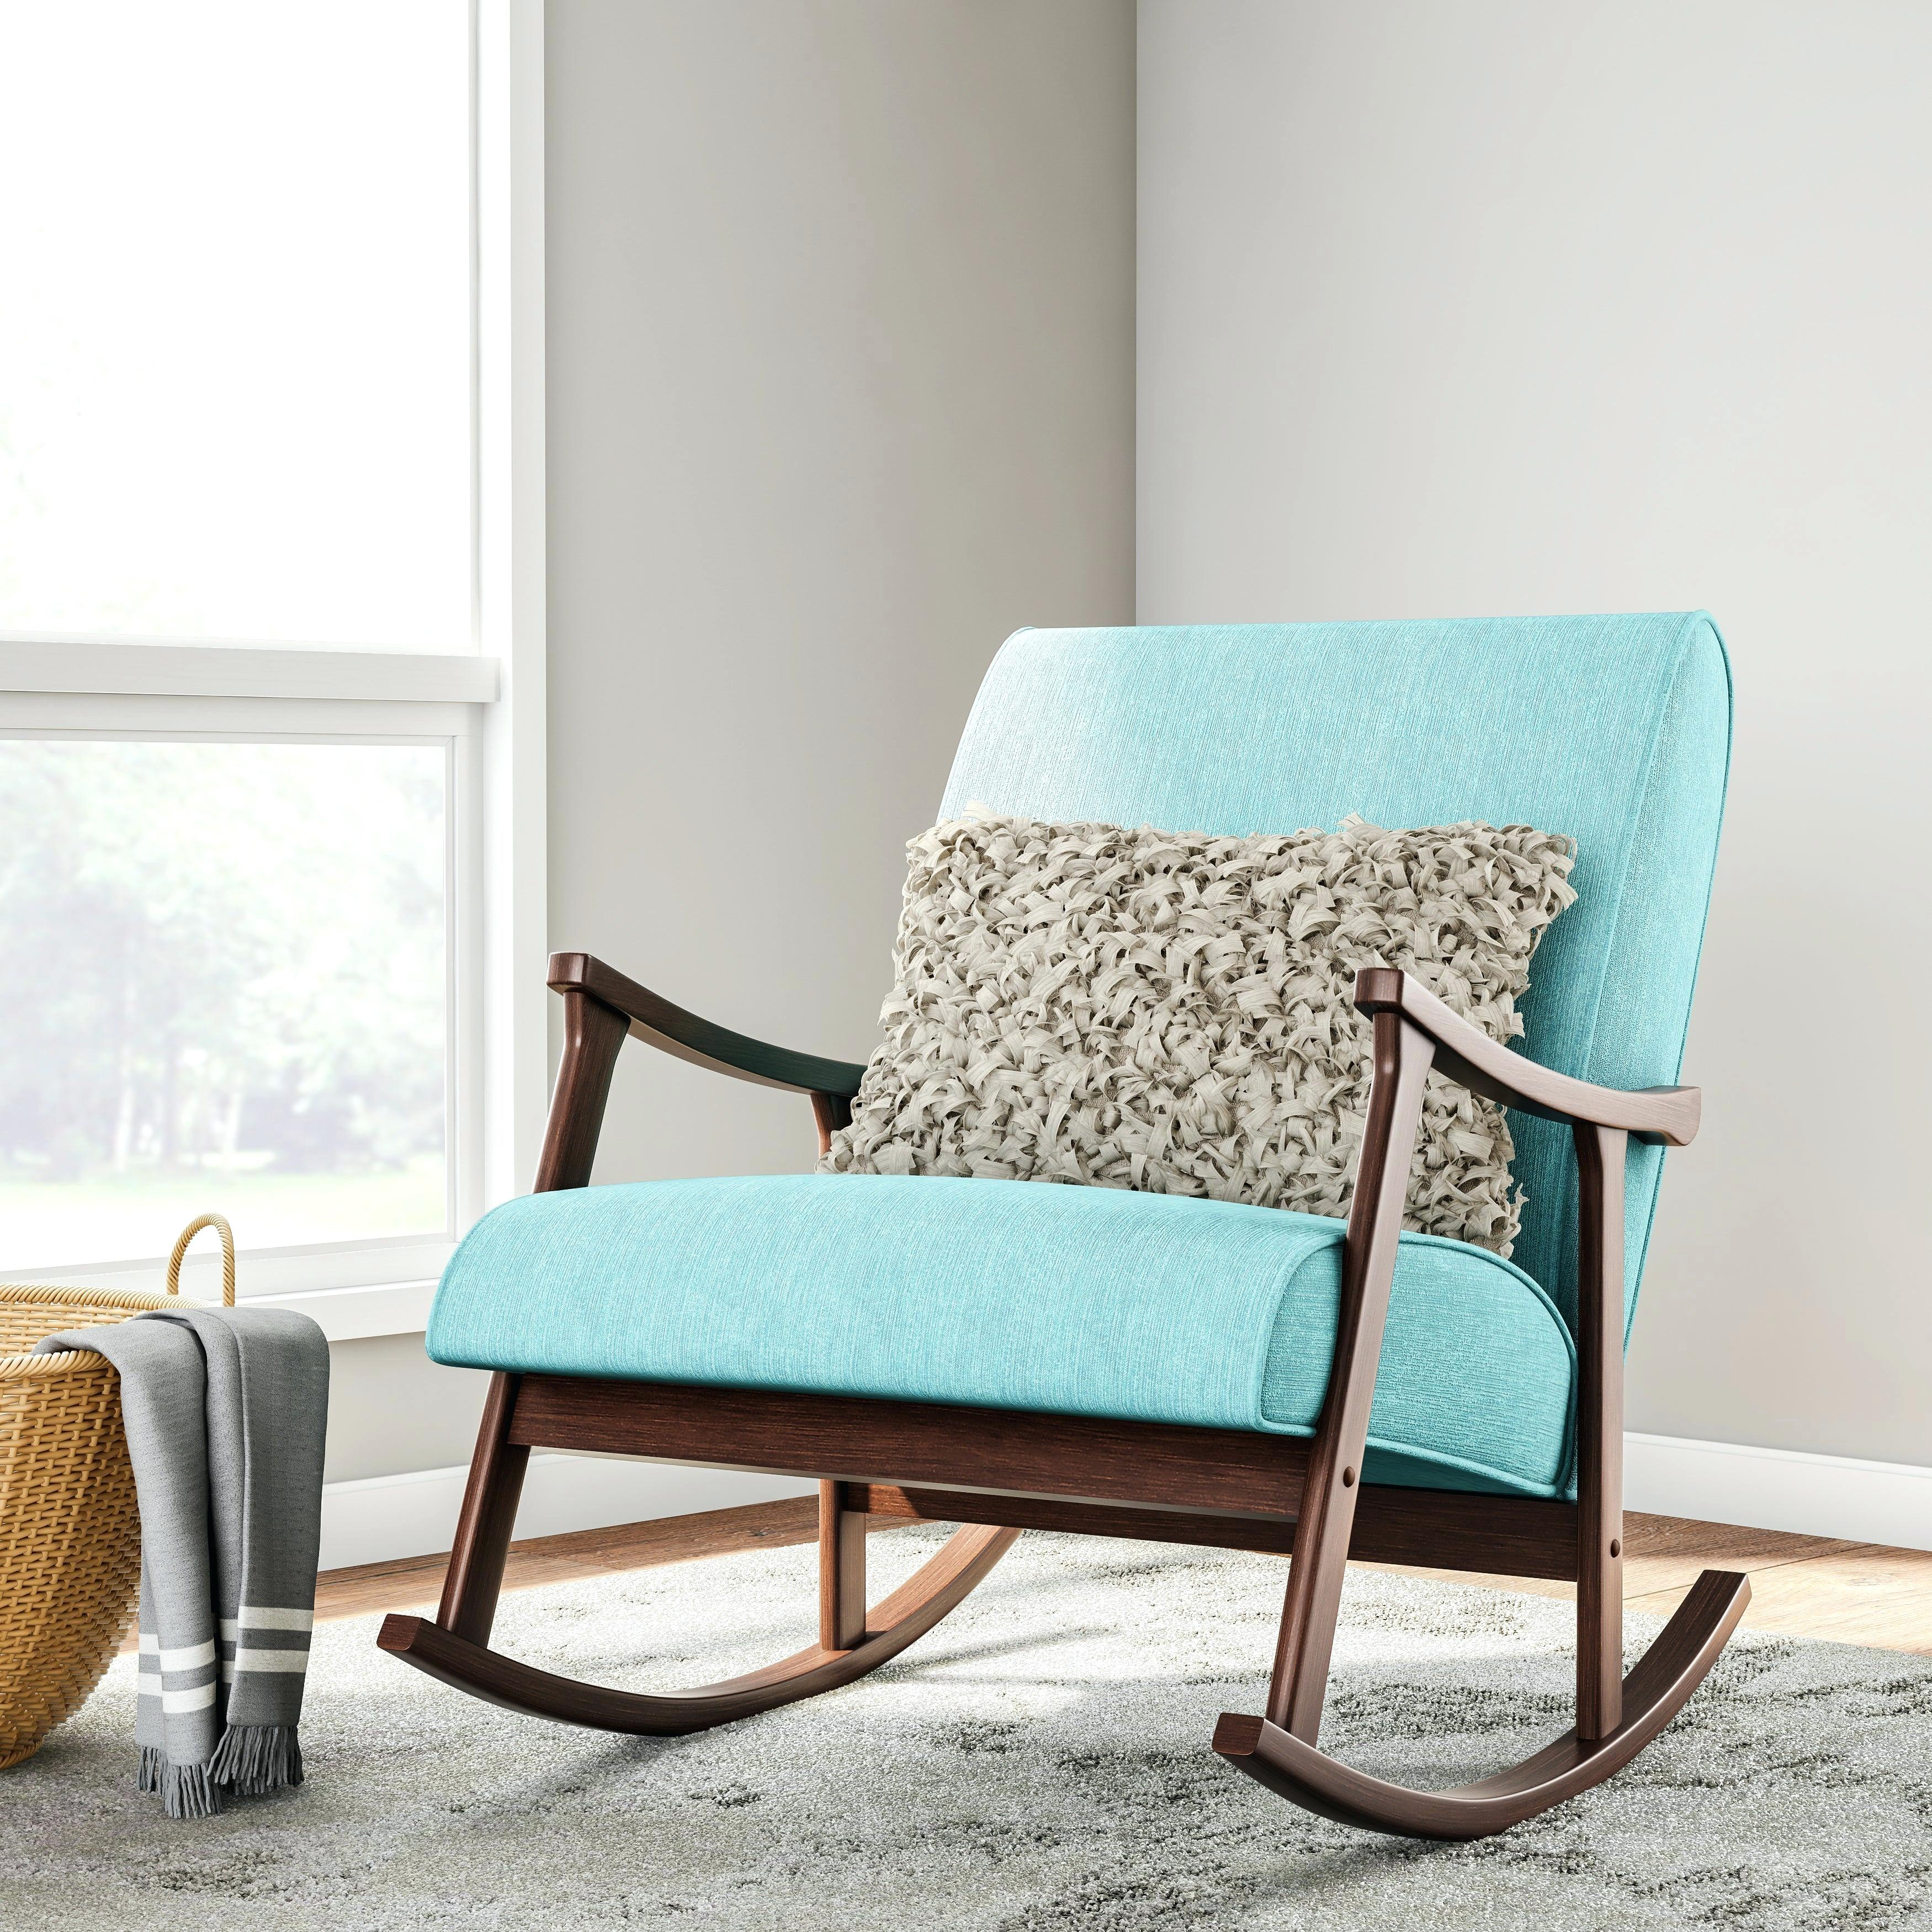 Inspiration about Rocking Chairs Online – Cafojapuqe.top Intended For Wooden Rocking Chairs With Fabric Upholstered Cushions, White (#20 of 20)